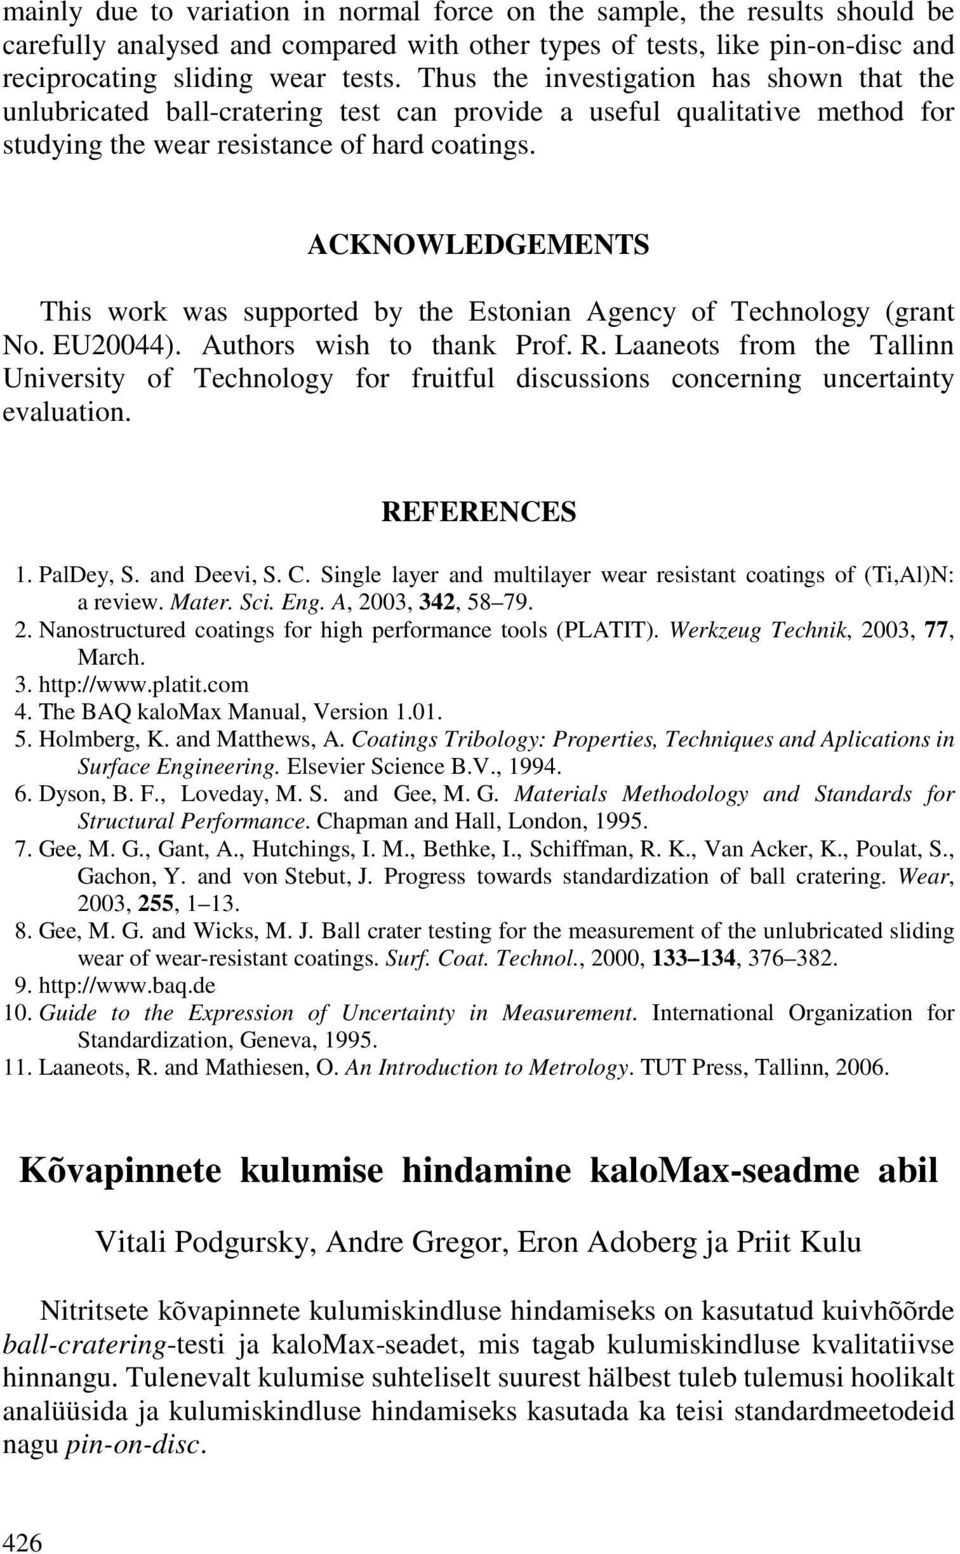 ACKNOWLEDGEMENTS This work was supported by the Estonian Agency of Technology (grant No. EU20044). Authors wish to thank Prof. R.